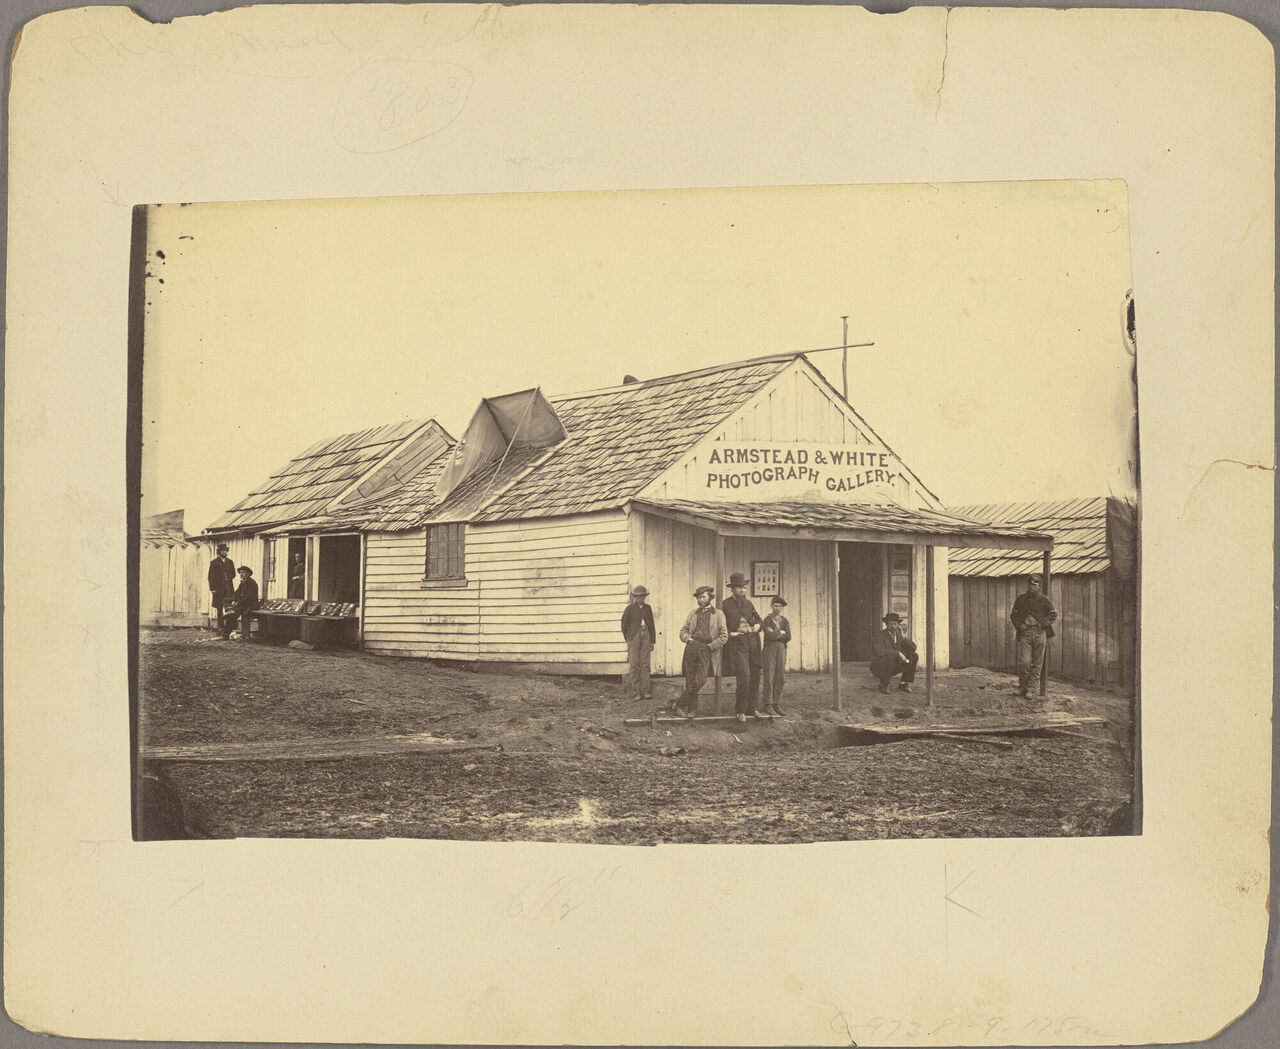 <em>Armstead & White Photograph Gallery</em>, Armstead & White, c. 1861-1865.